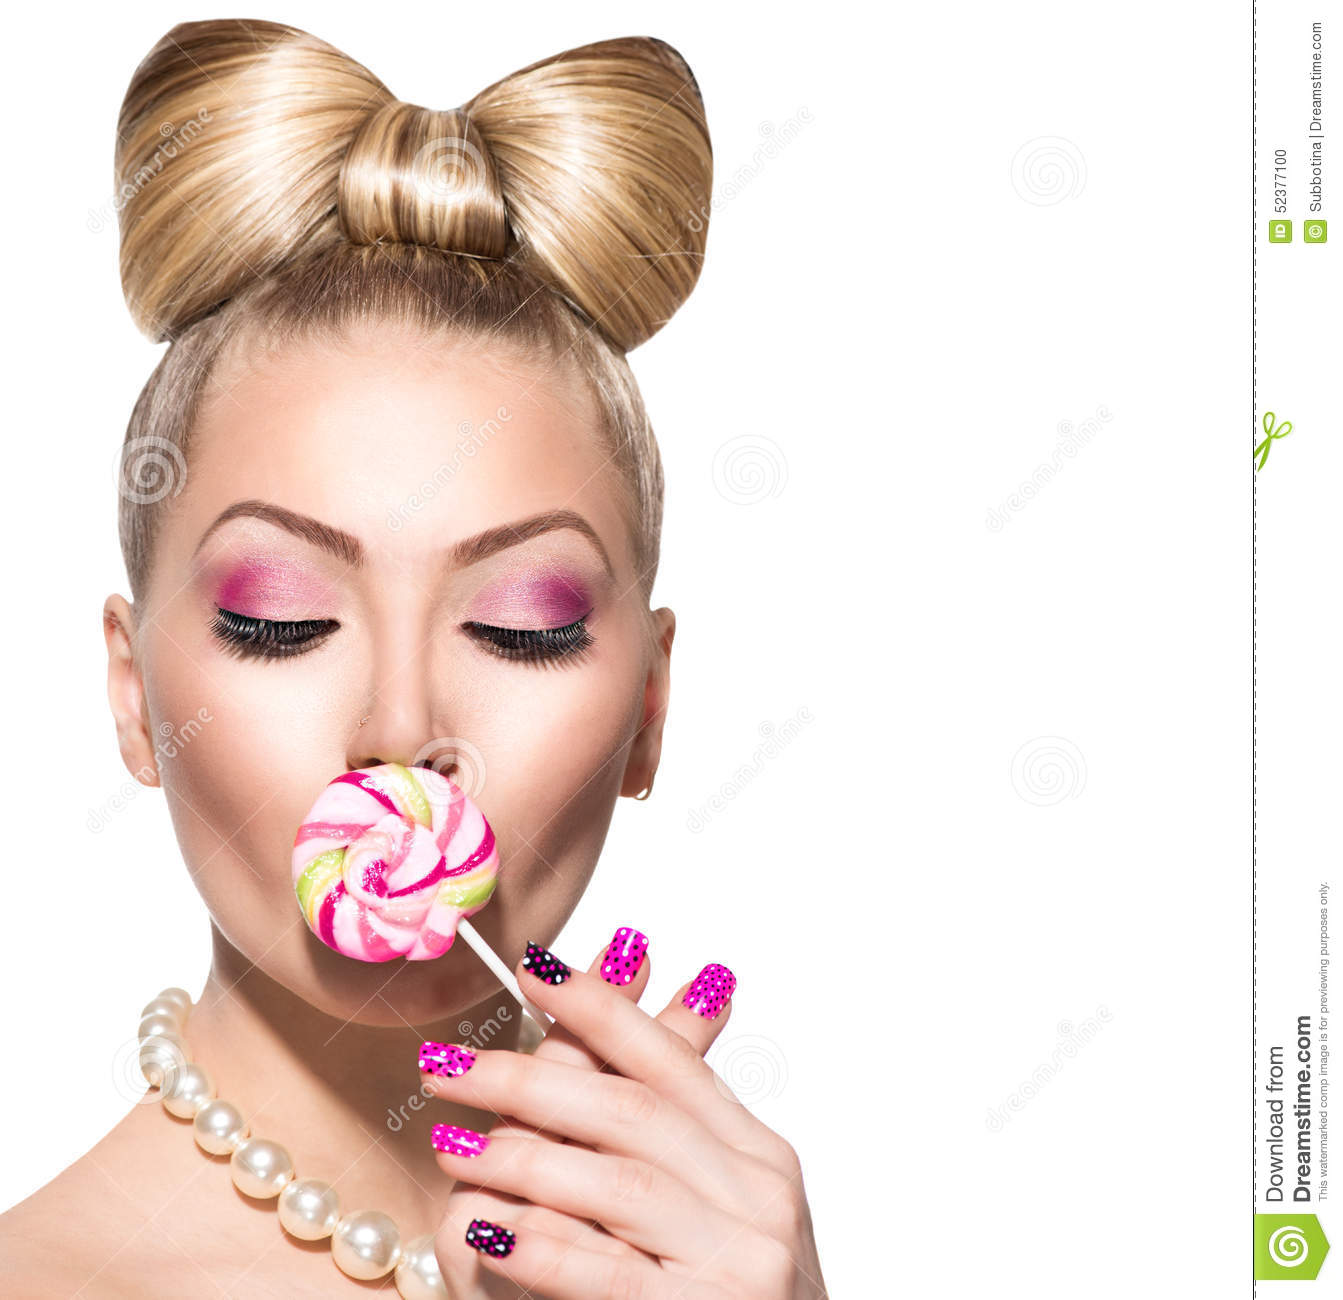 Beauty Girl Eating Colourful Lollipop Stock Photo